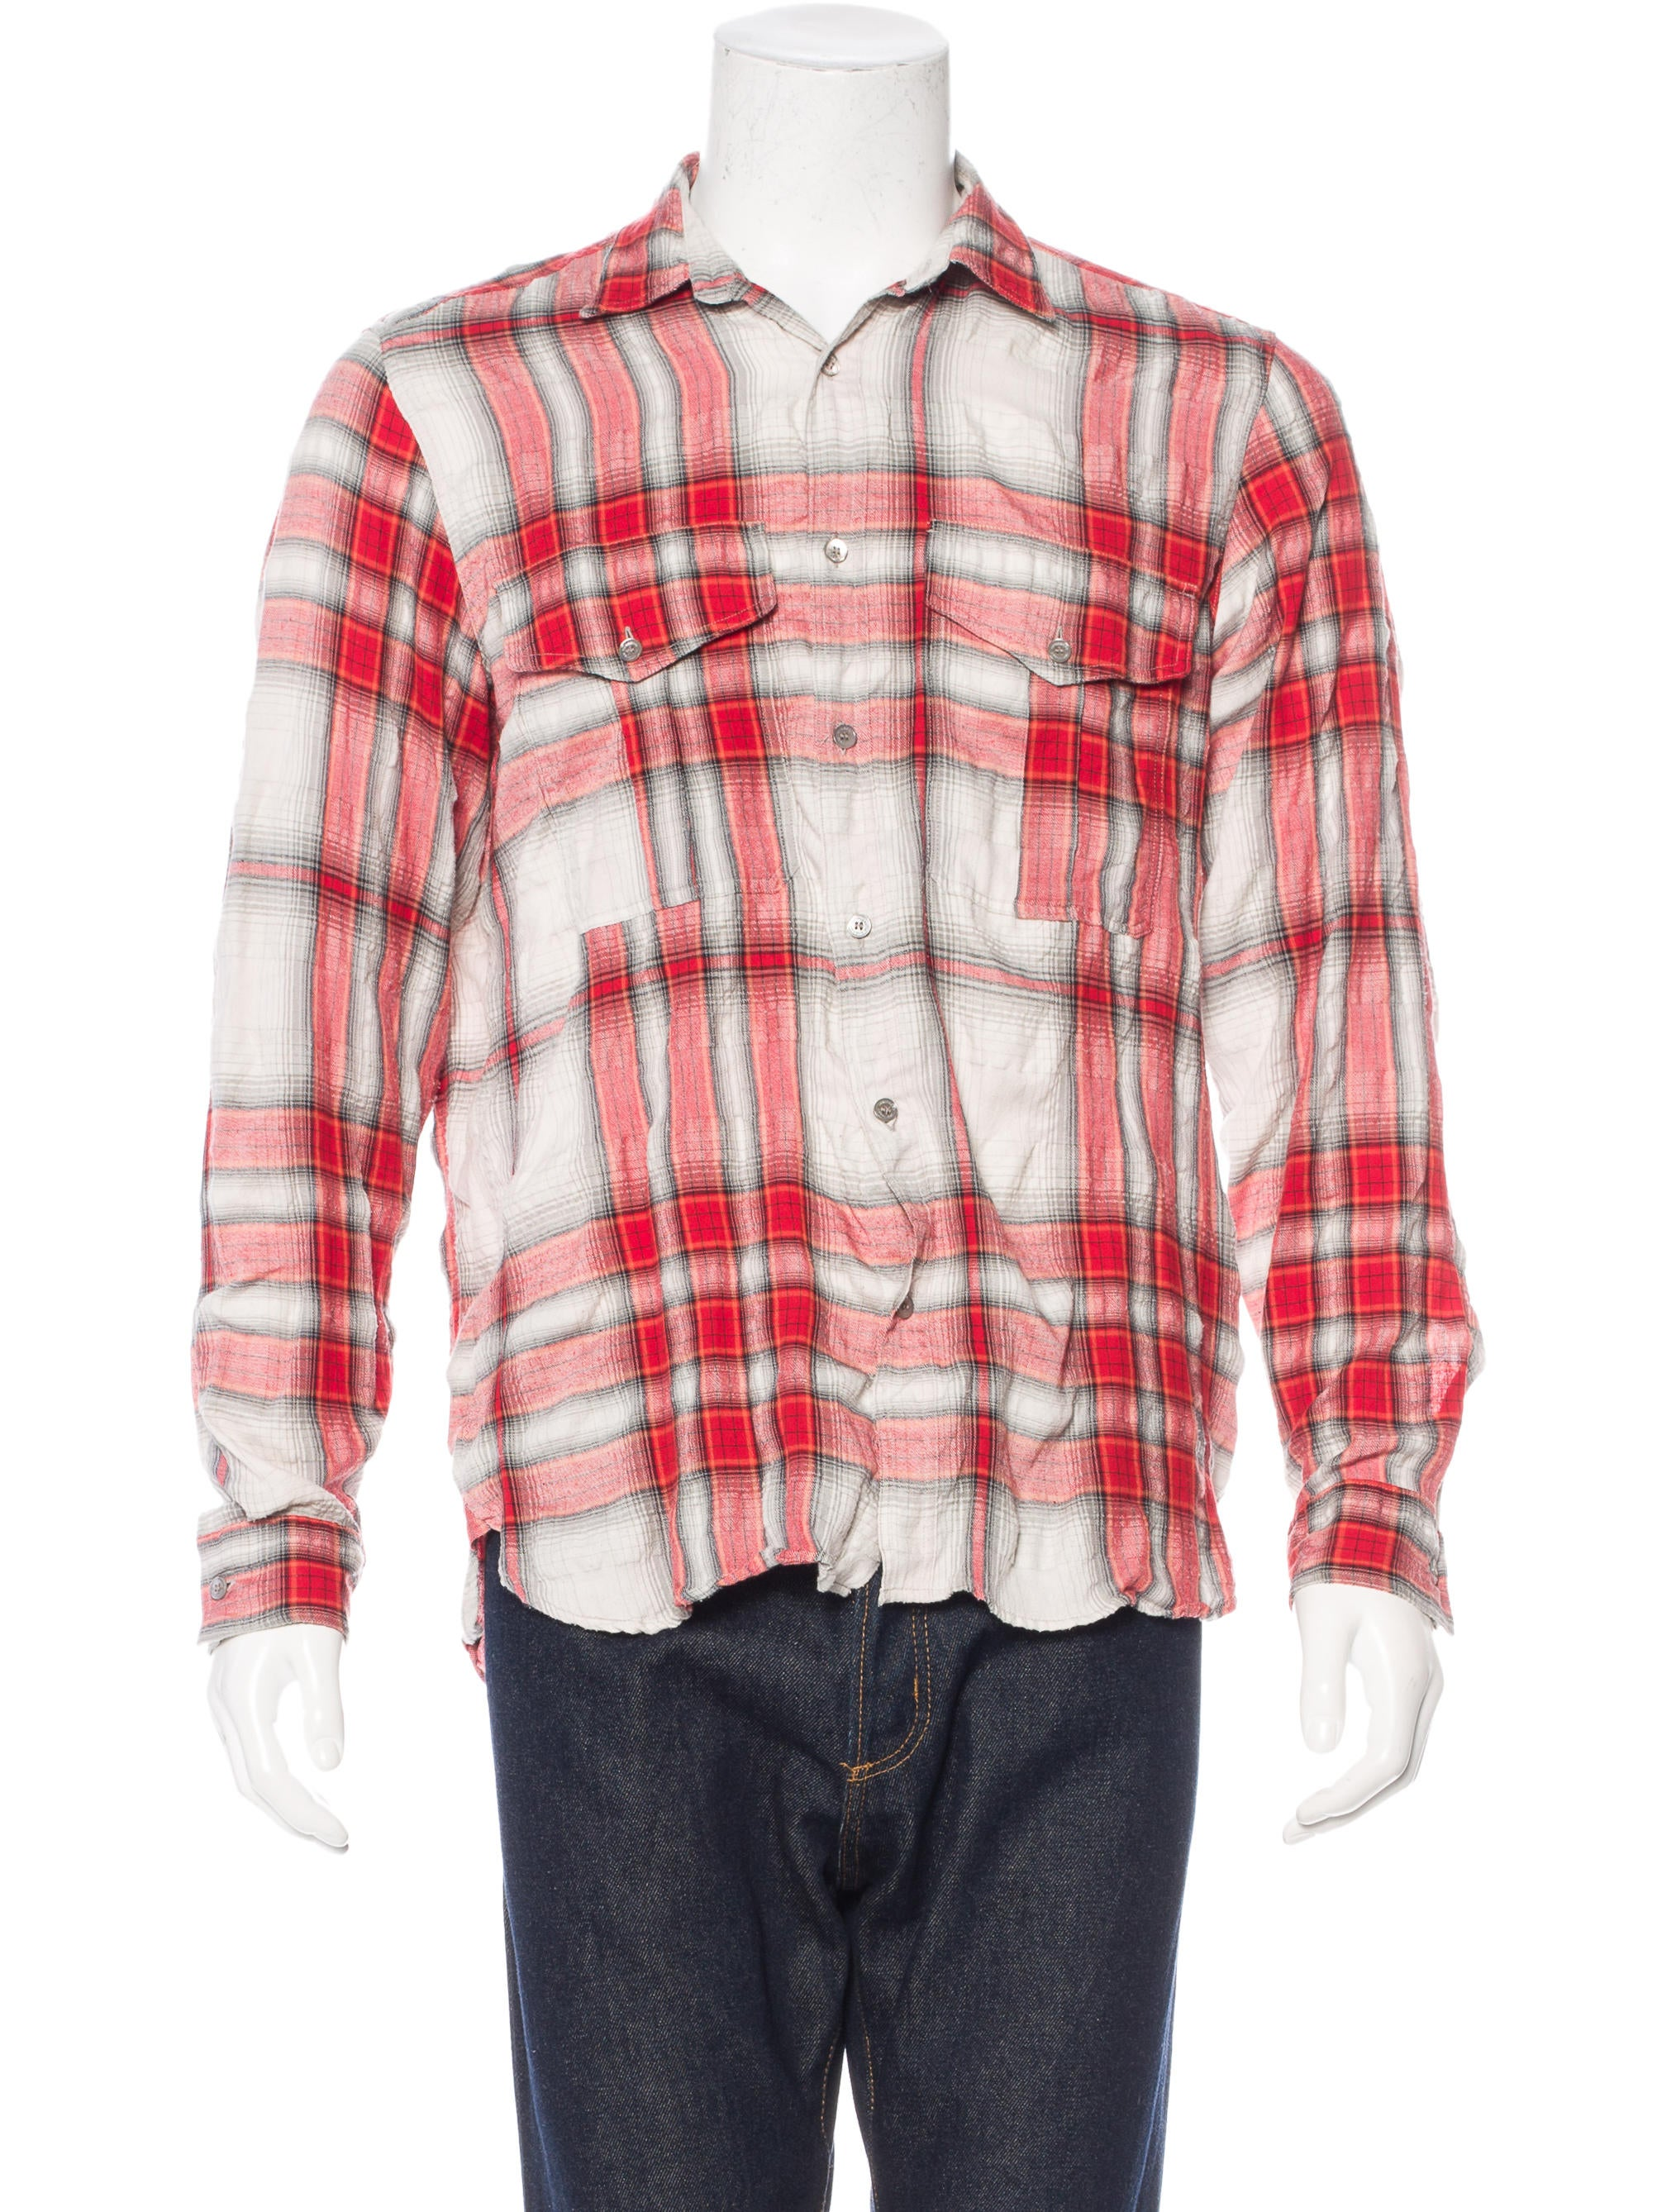 Burberry brit plaid woven shirt clothing bbr27092 for Burberry brit checked shirt